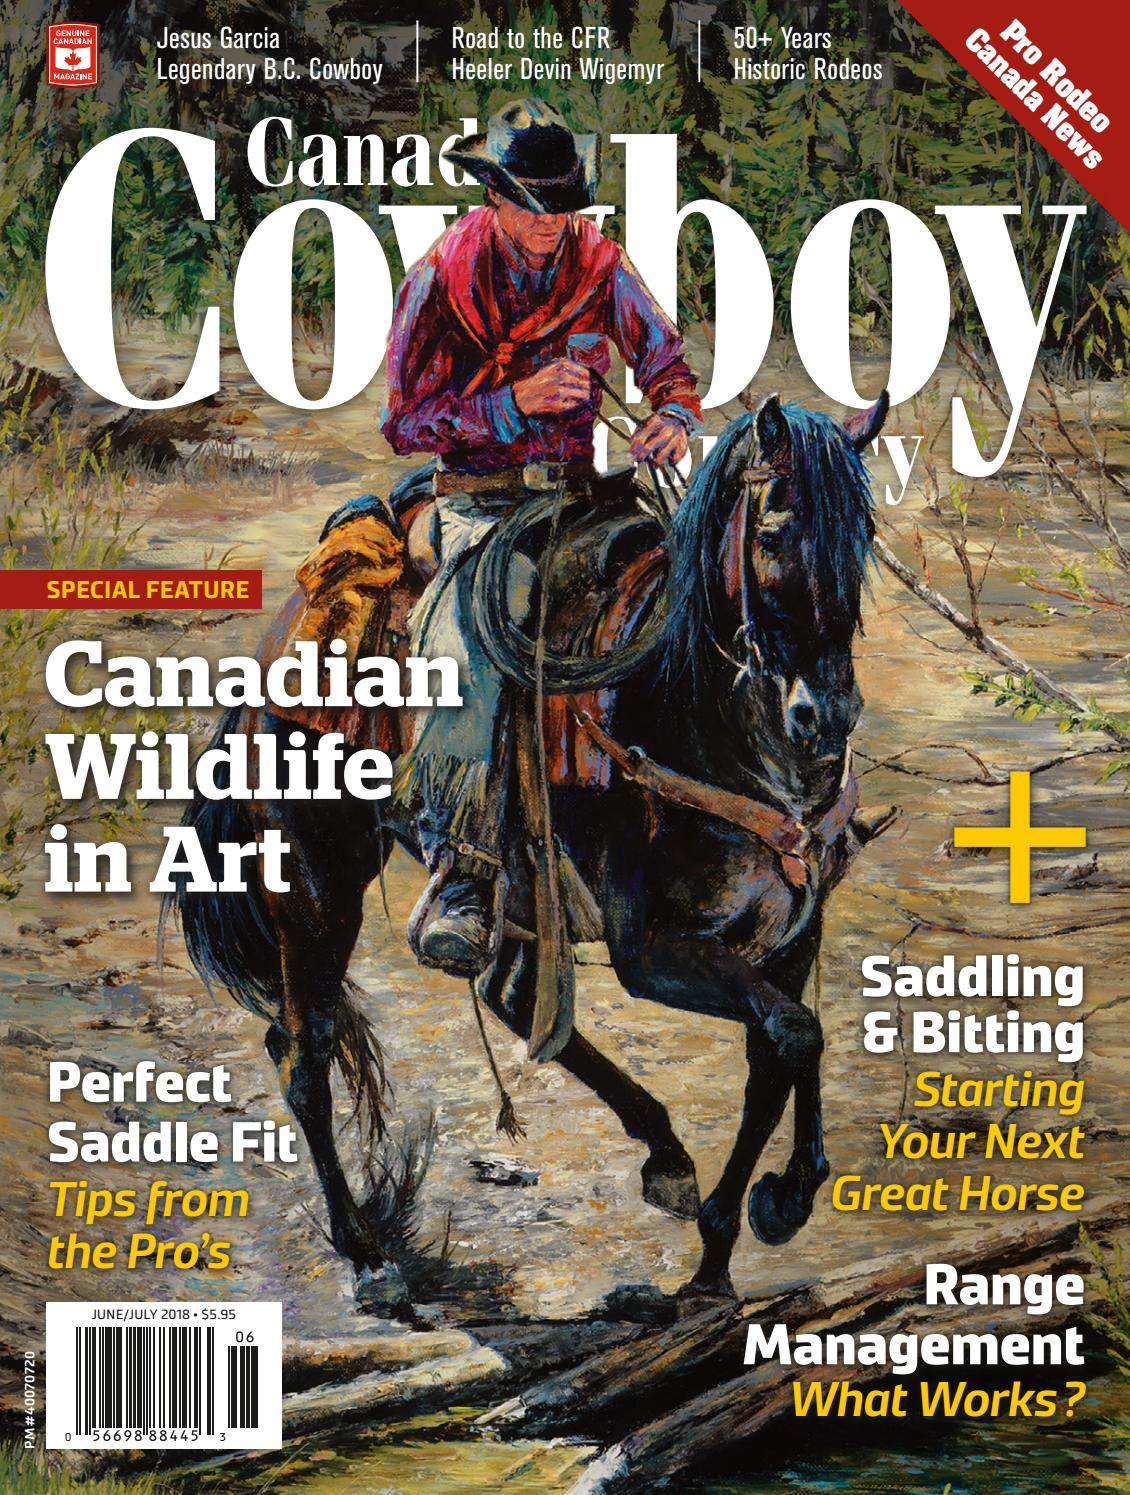 Canadian Cowboy Country - Jun/Jul 2018 by Tanner Young